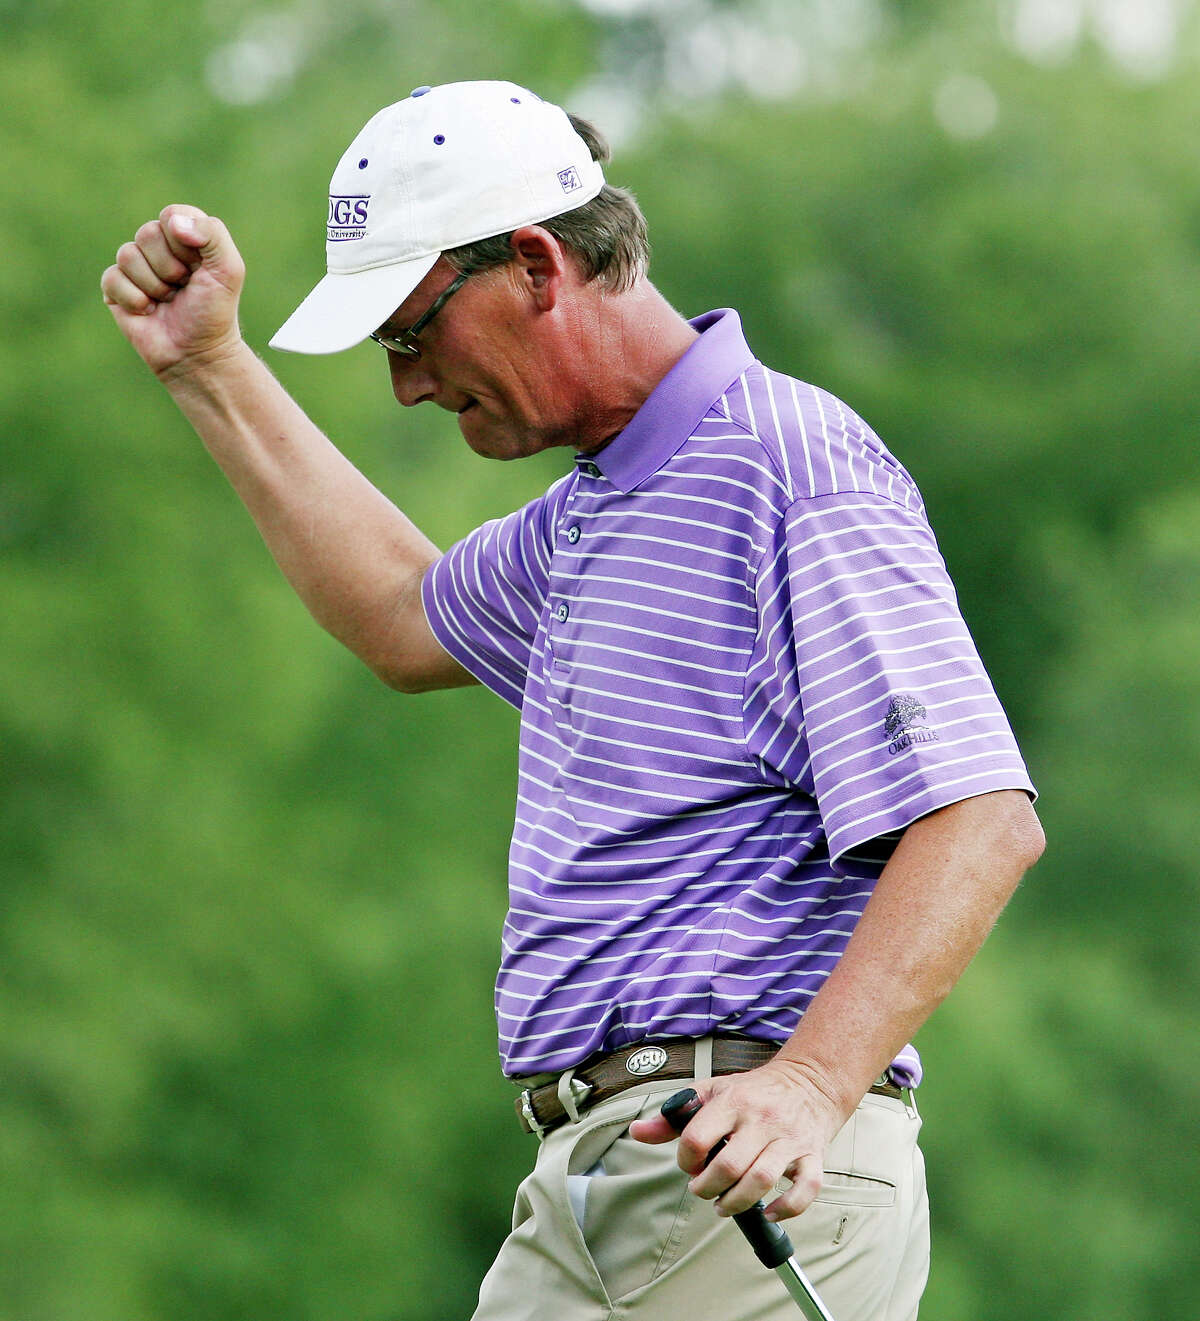 Bobby Baugh reacts after a birdie on the 18th hole during the final round of the Greater San Antonio Men's Championship held Sunday June 17, 2012 at The Republic Golf Club. Adam Lowe defeated Stanton Tondre in a four hole playoff to win the event.